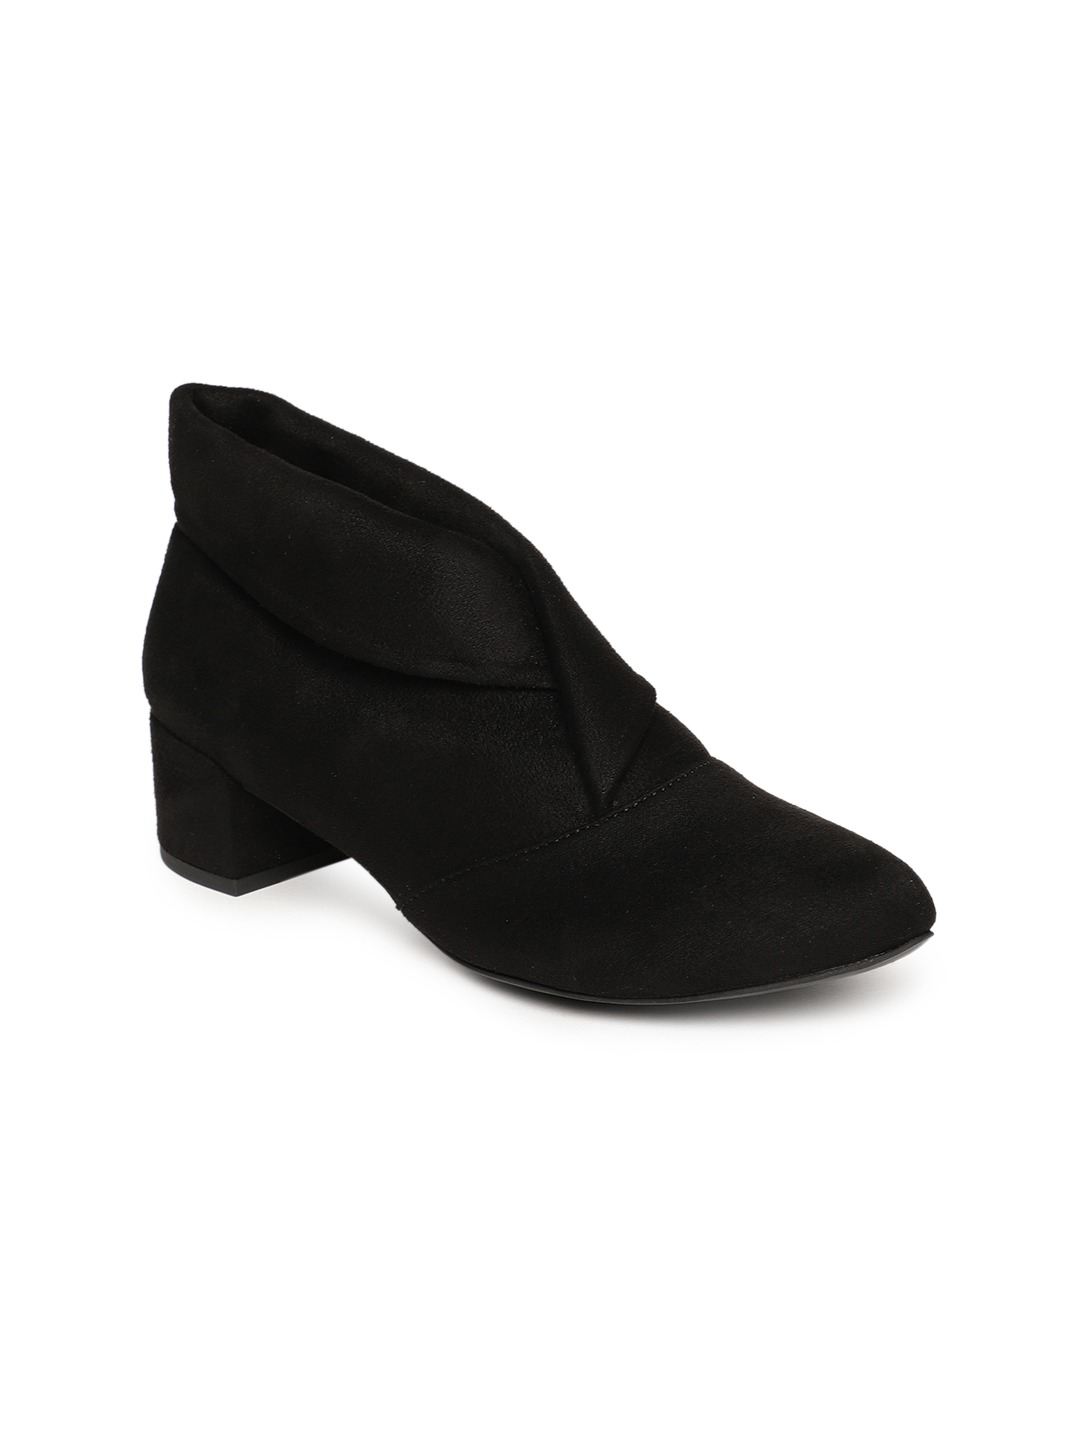 Black Solid Heeled Boots